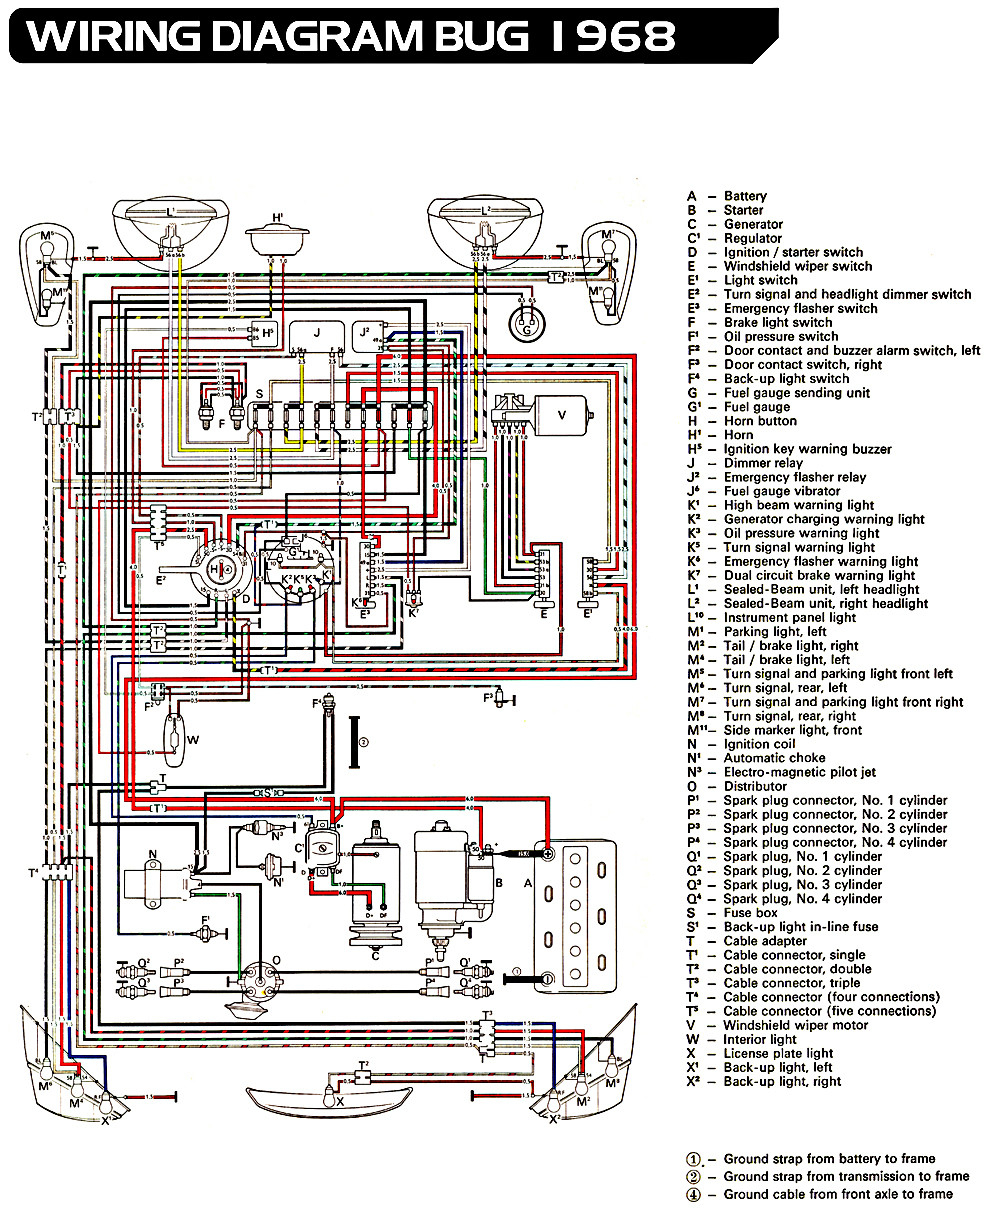 1973 Vw Super Beetle Wiring Diagram - Further 73 Vw Beetle Ignition Switch Wiring Diagram Further Vw Rh Gogowire Co 14n